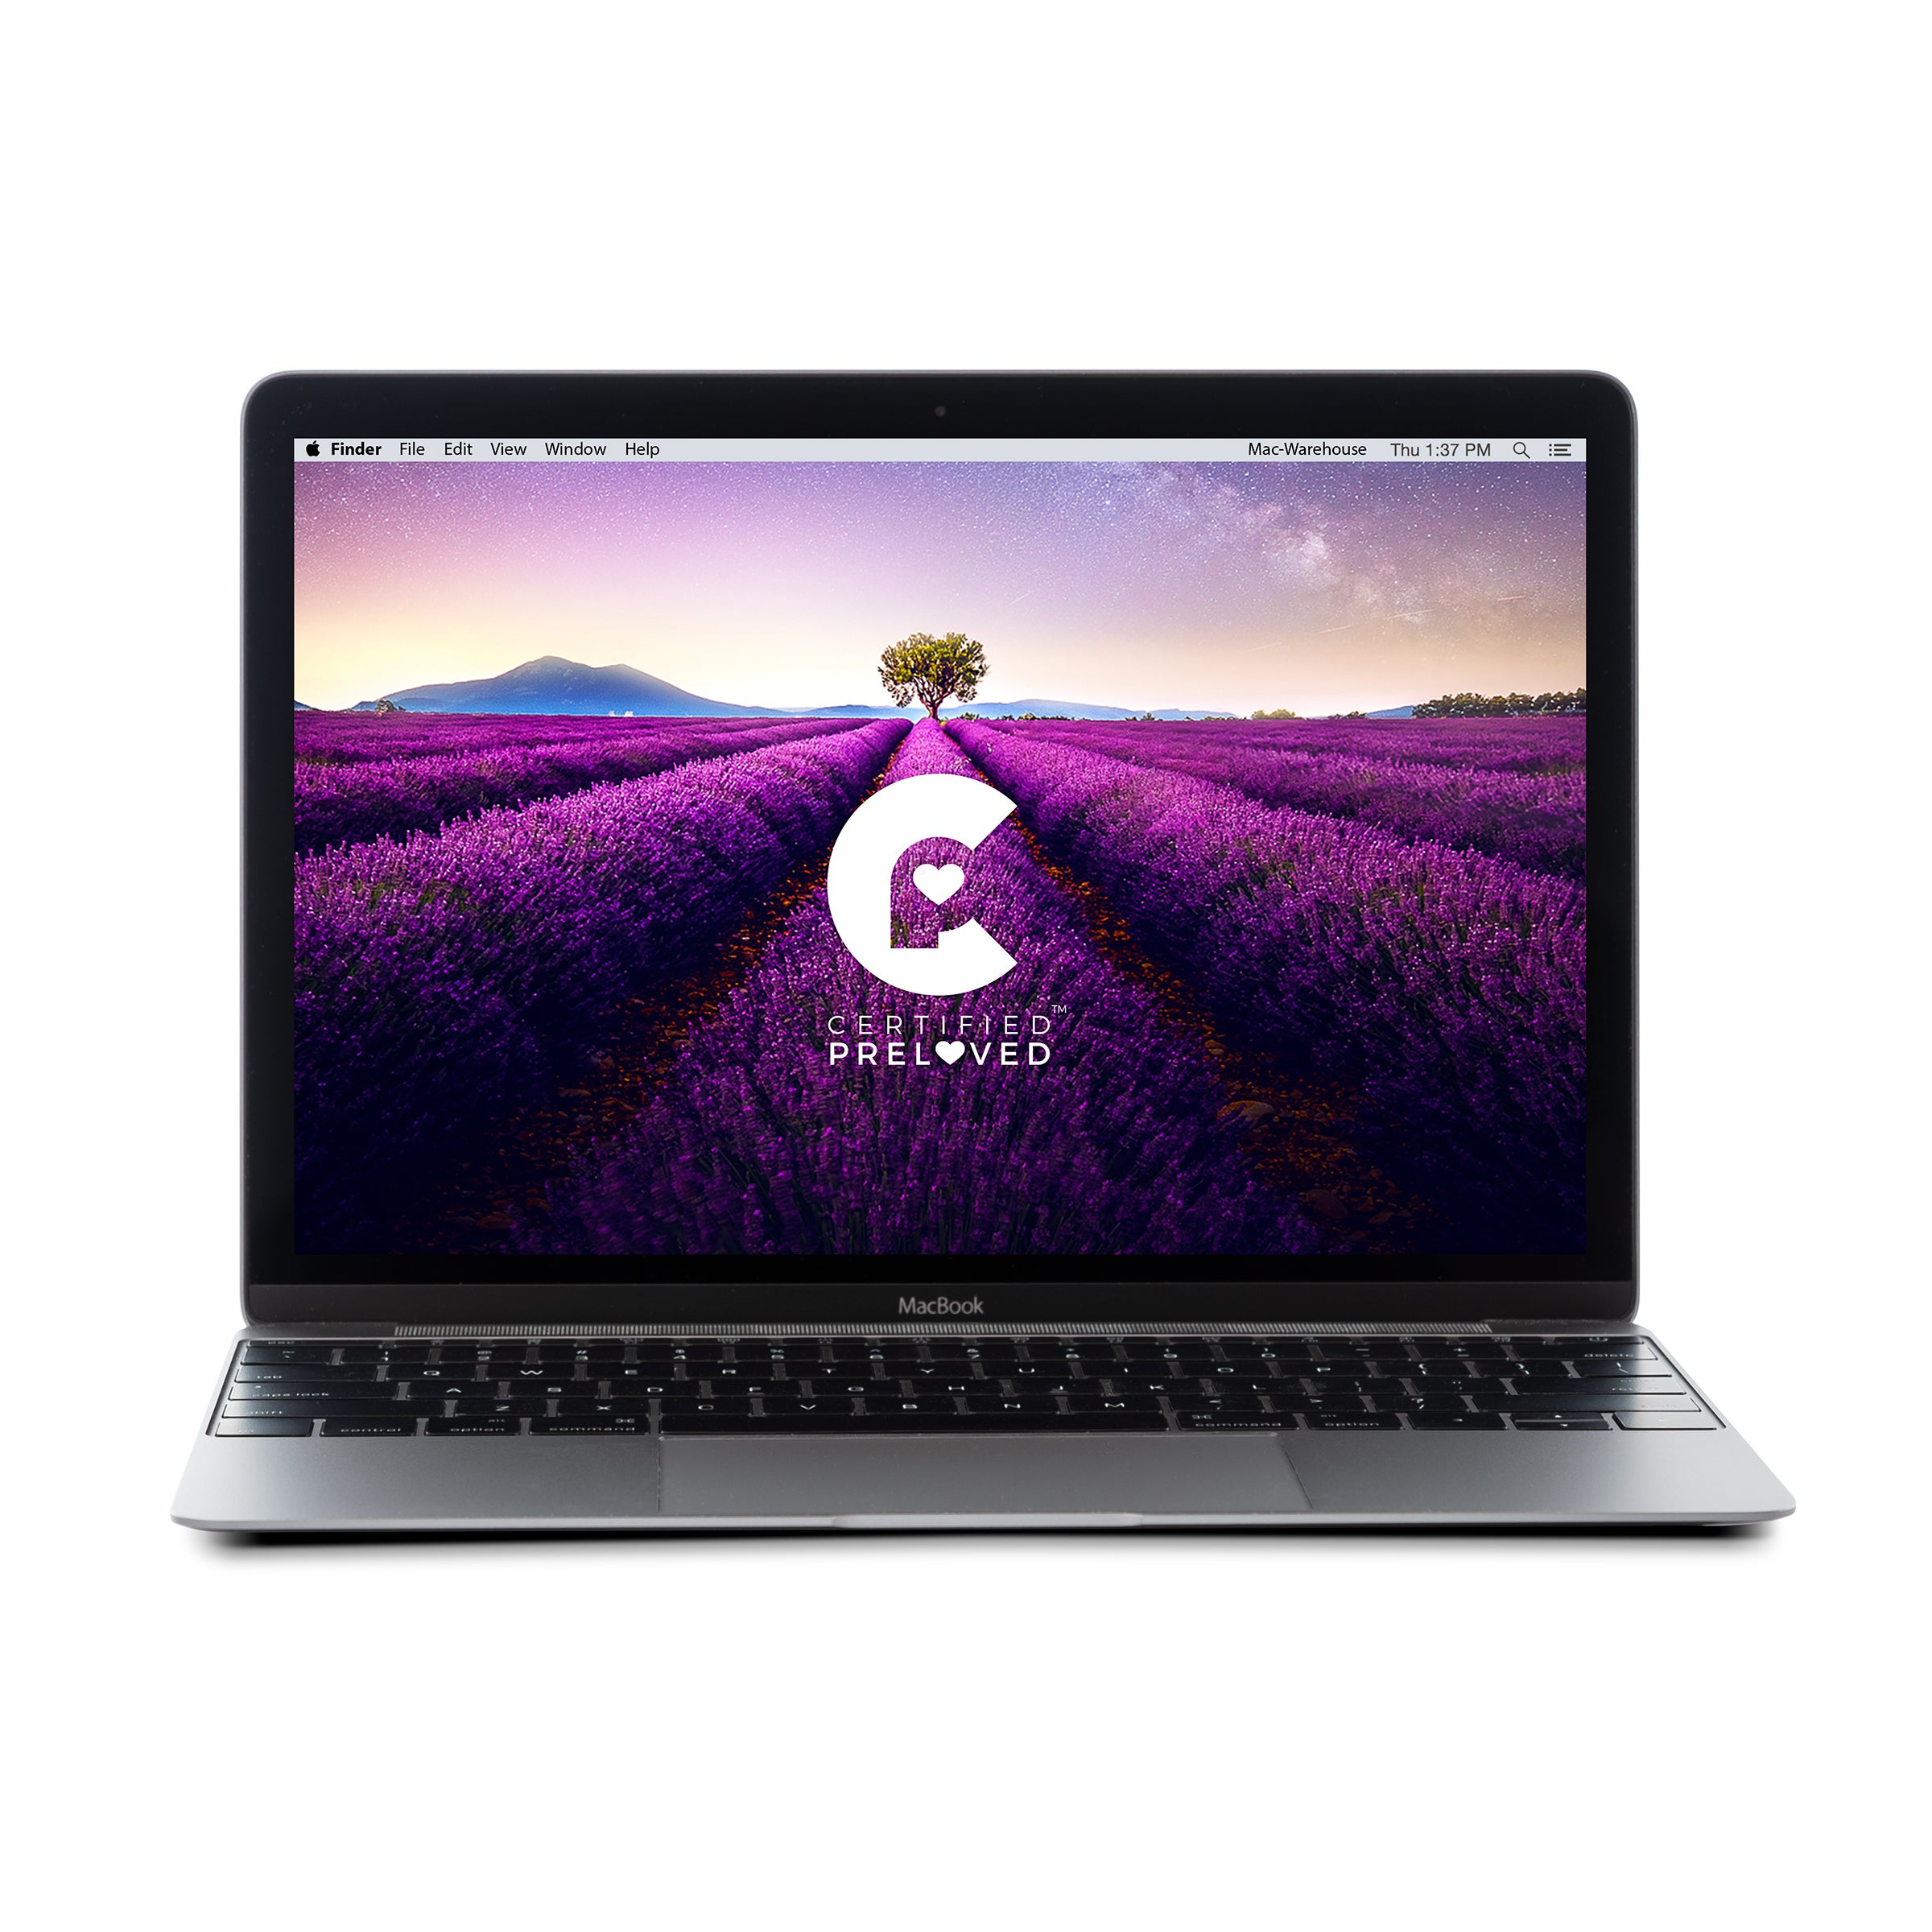 Apple MJY32LL/A 12 inch Macbook Retina DCM 1.1 GHz - Refurbished by Overstock 8 GB